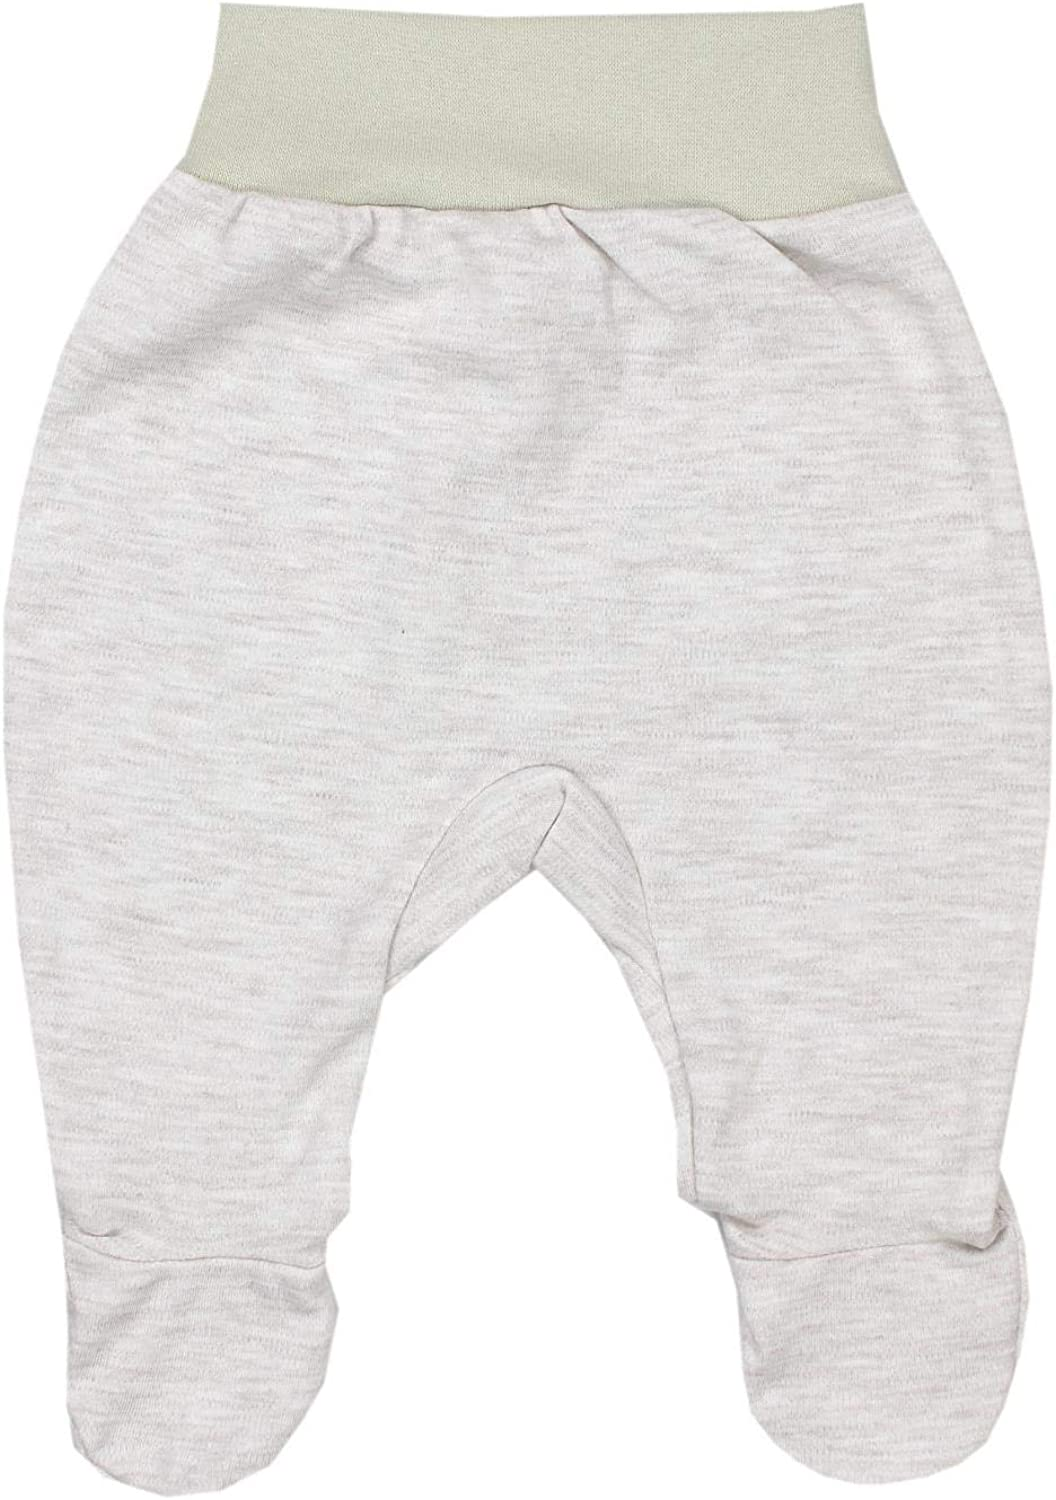 TupTam Baby Girls Footed Trouser Pack of 5